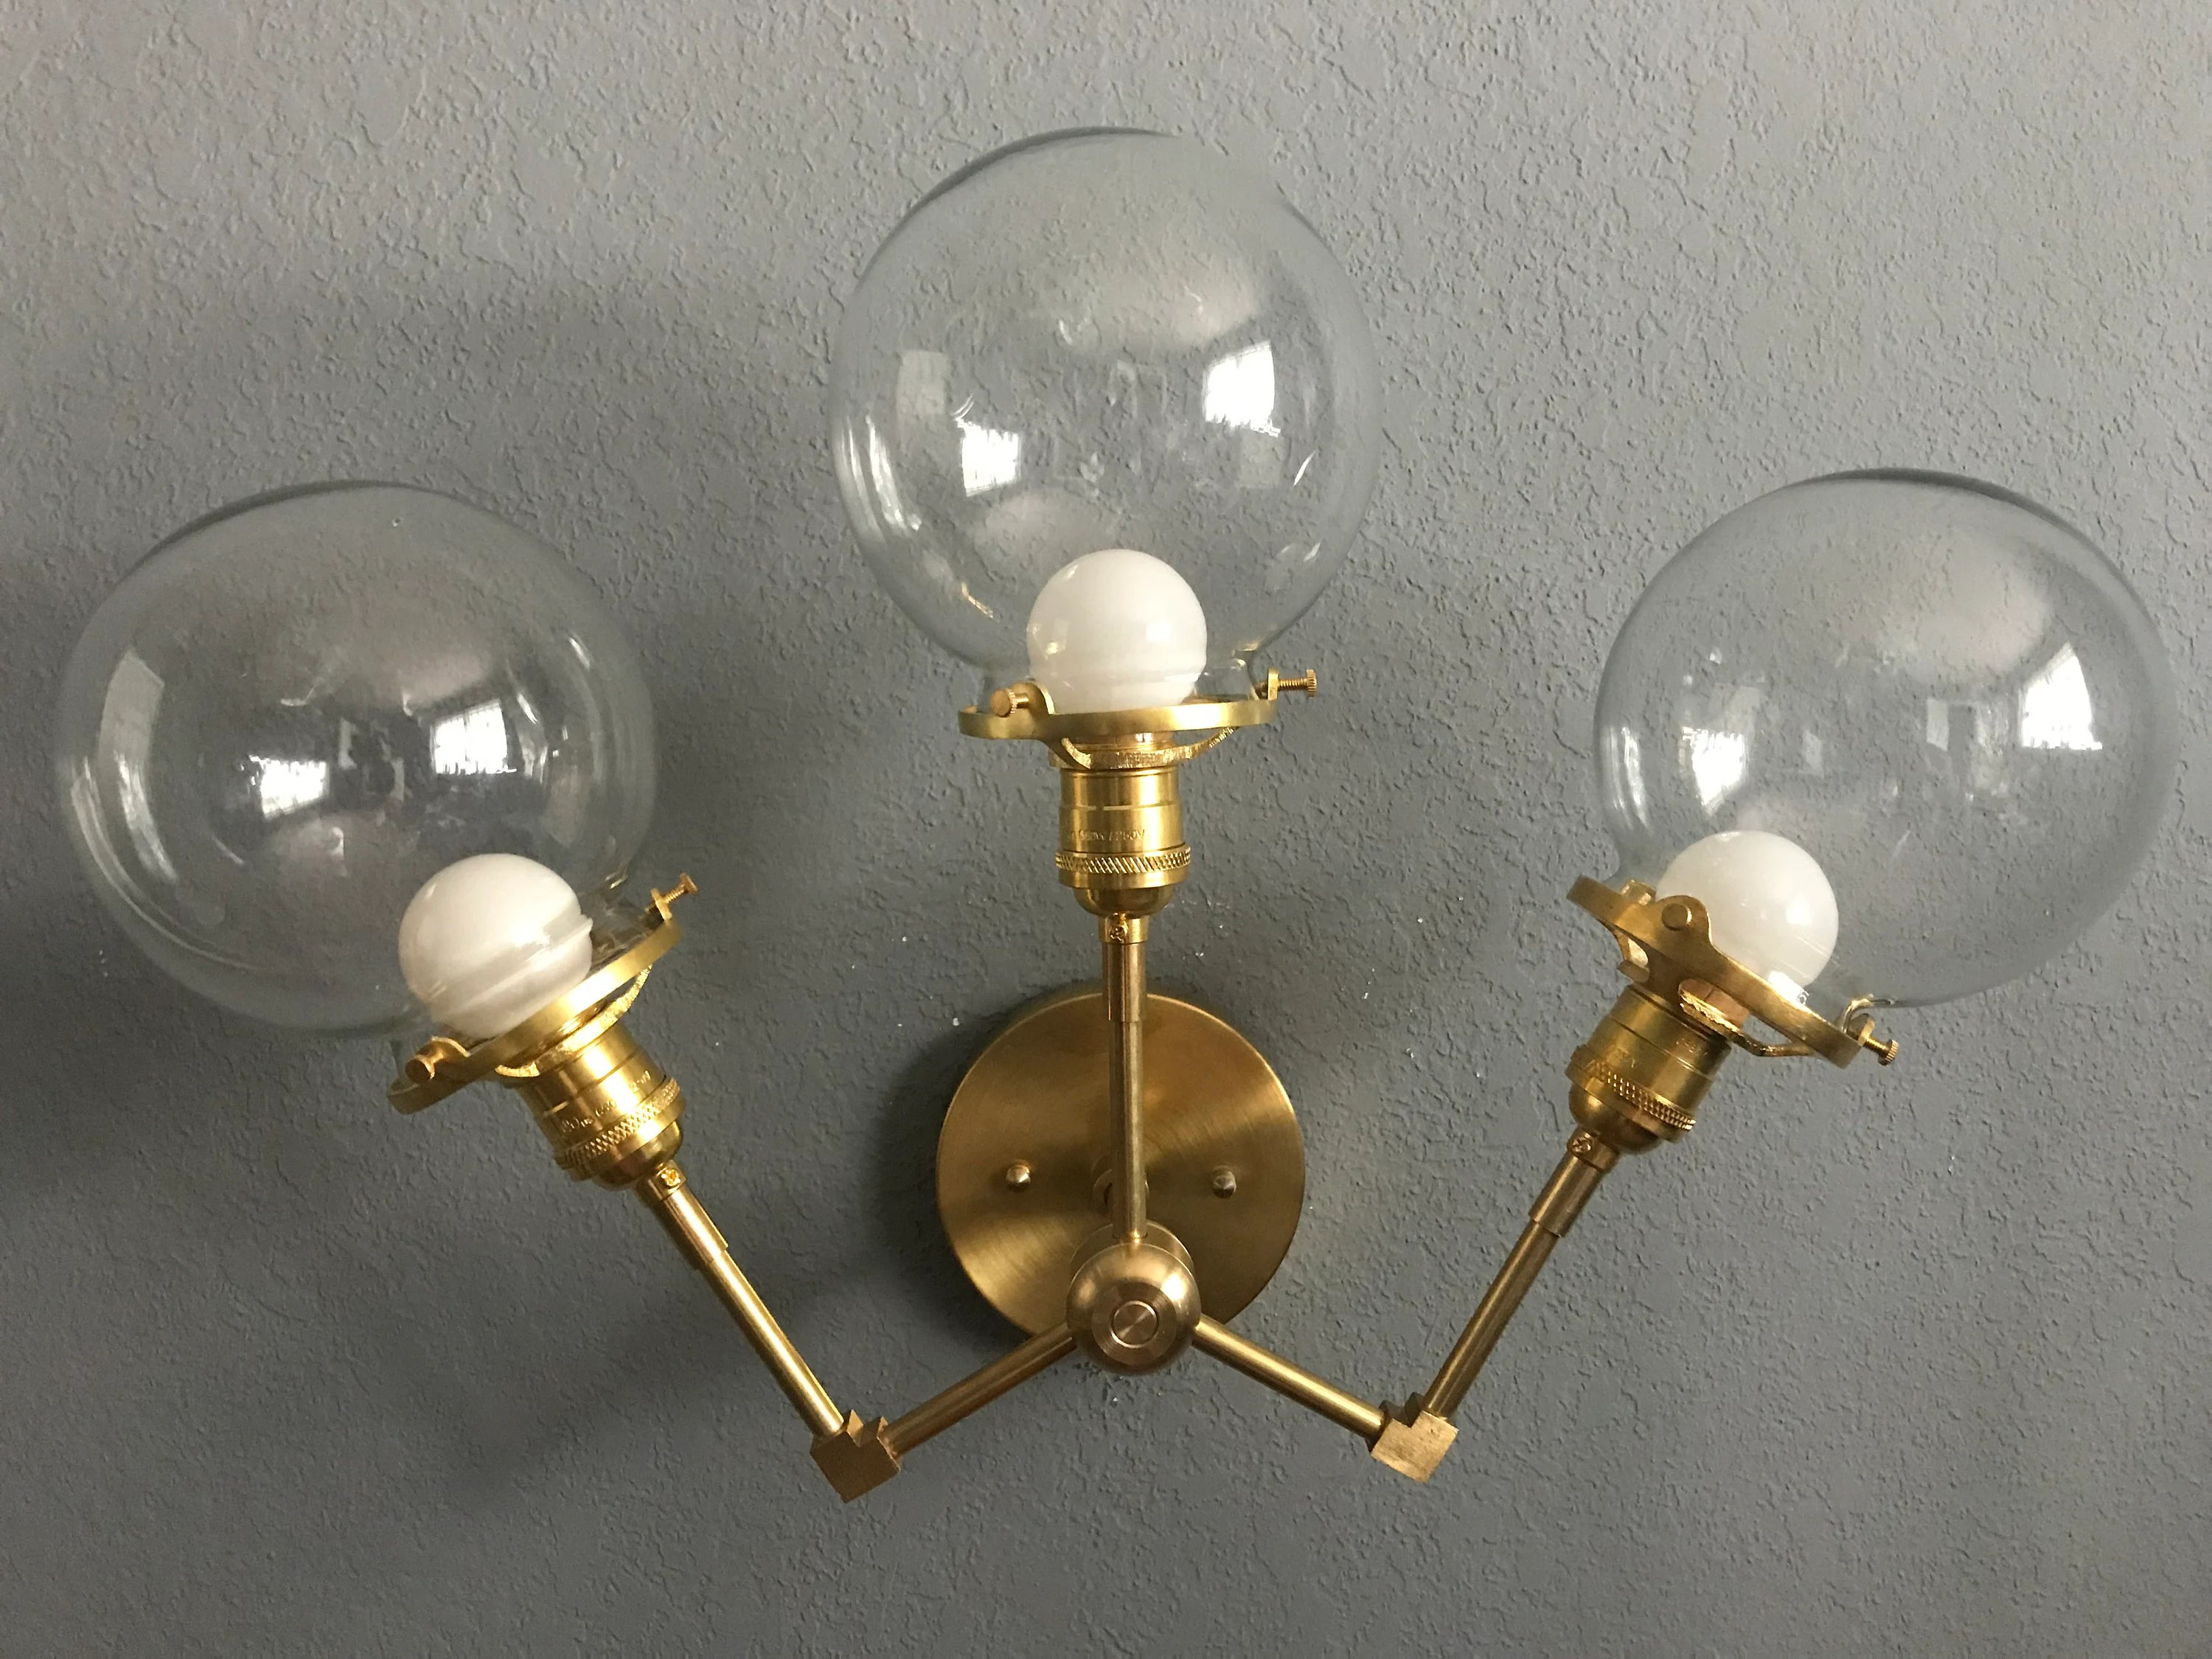 Modern Industrial Bathroom Vanity Gold Raw Brass 3 Lights 6 Inch Clear Globes Wall Sconce Modern